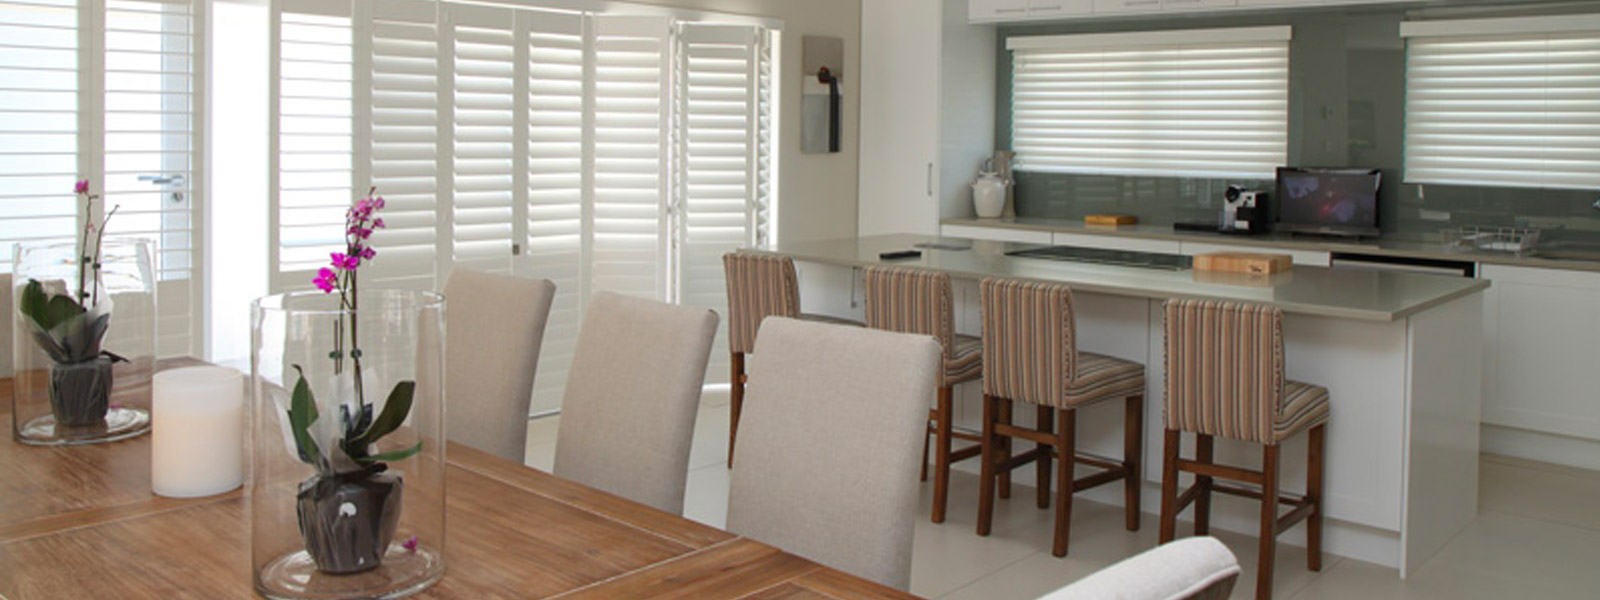 The Cost Of Window Shutters